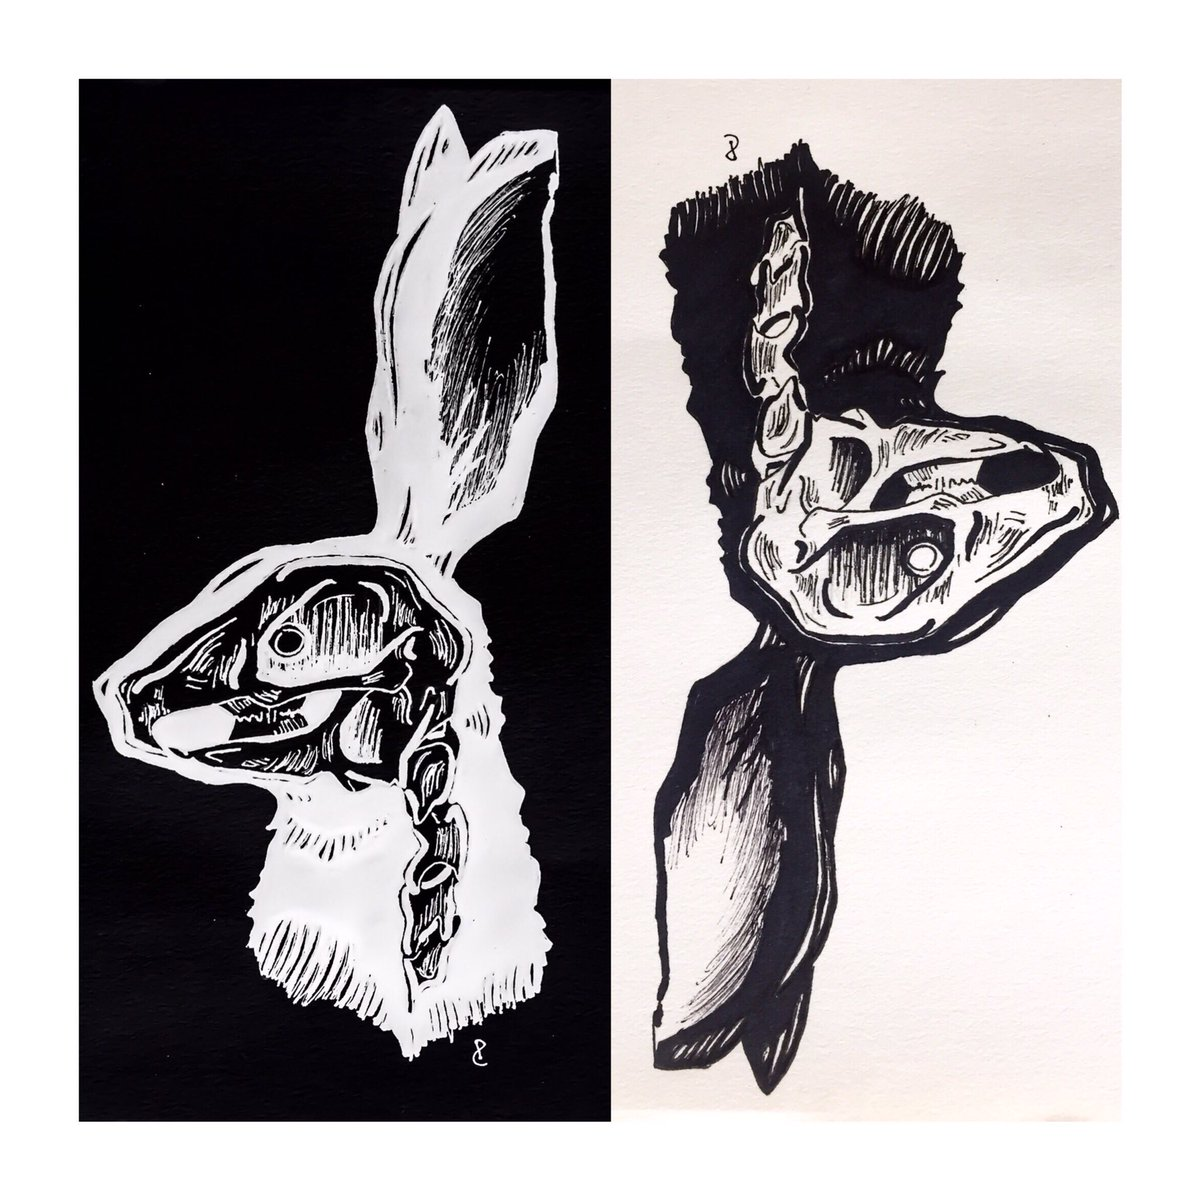 i&#39;m the deathinspiredrabbit,, . |-/ . @twentyonepilots @skeletonclique #FanArtFriday #cliqueart<br>http://pic.twitter.com/rVsBkCUYKW